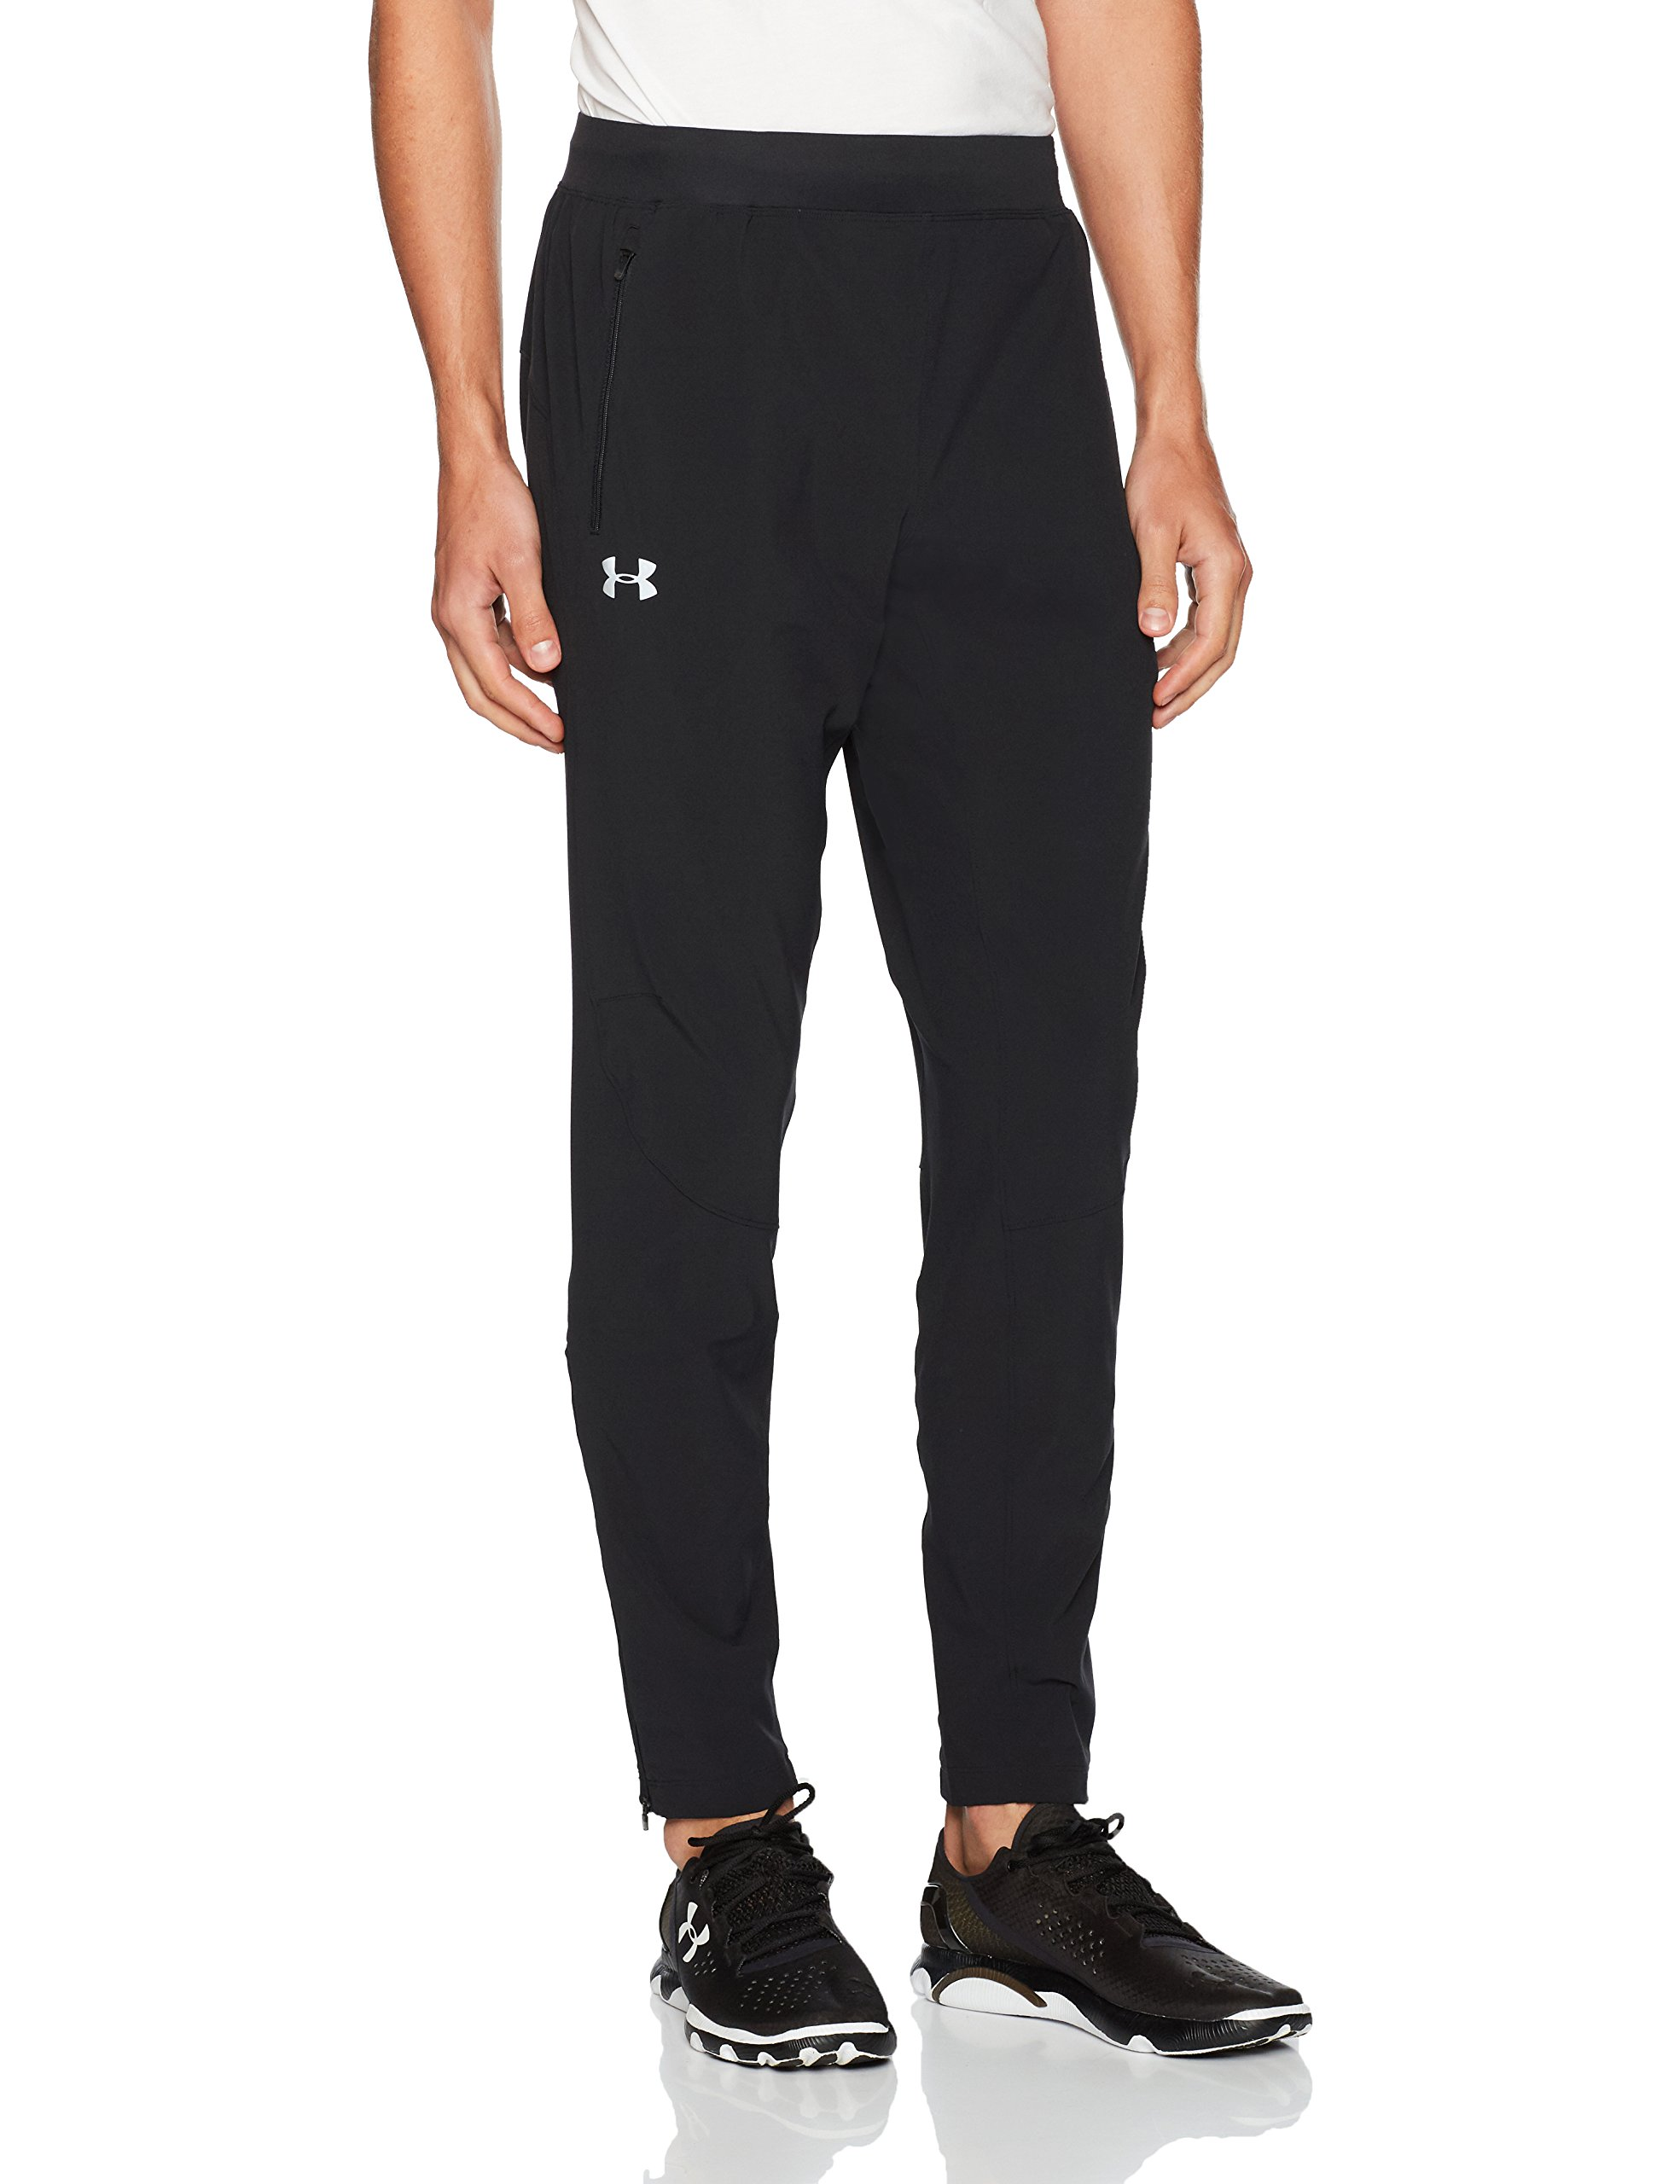 Under Armour Men's Outrun The Storm Pants, Black (001)/Reflective, Small